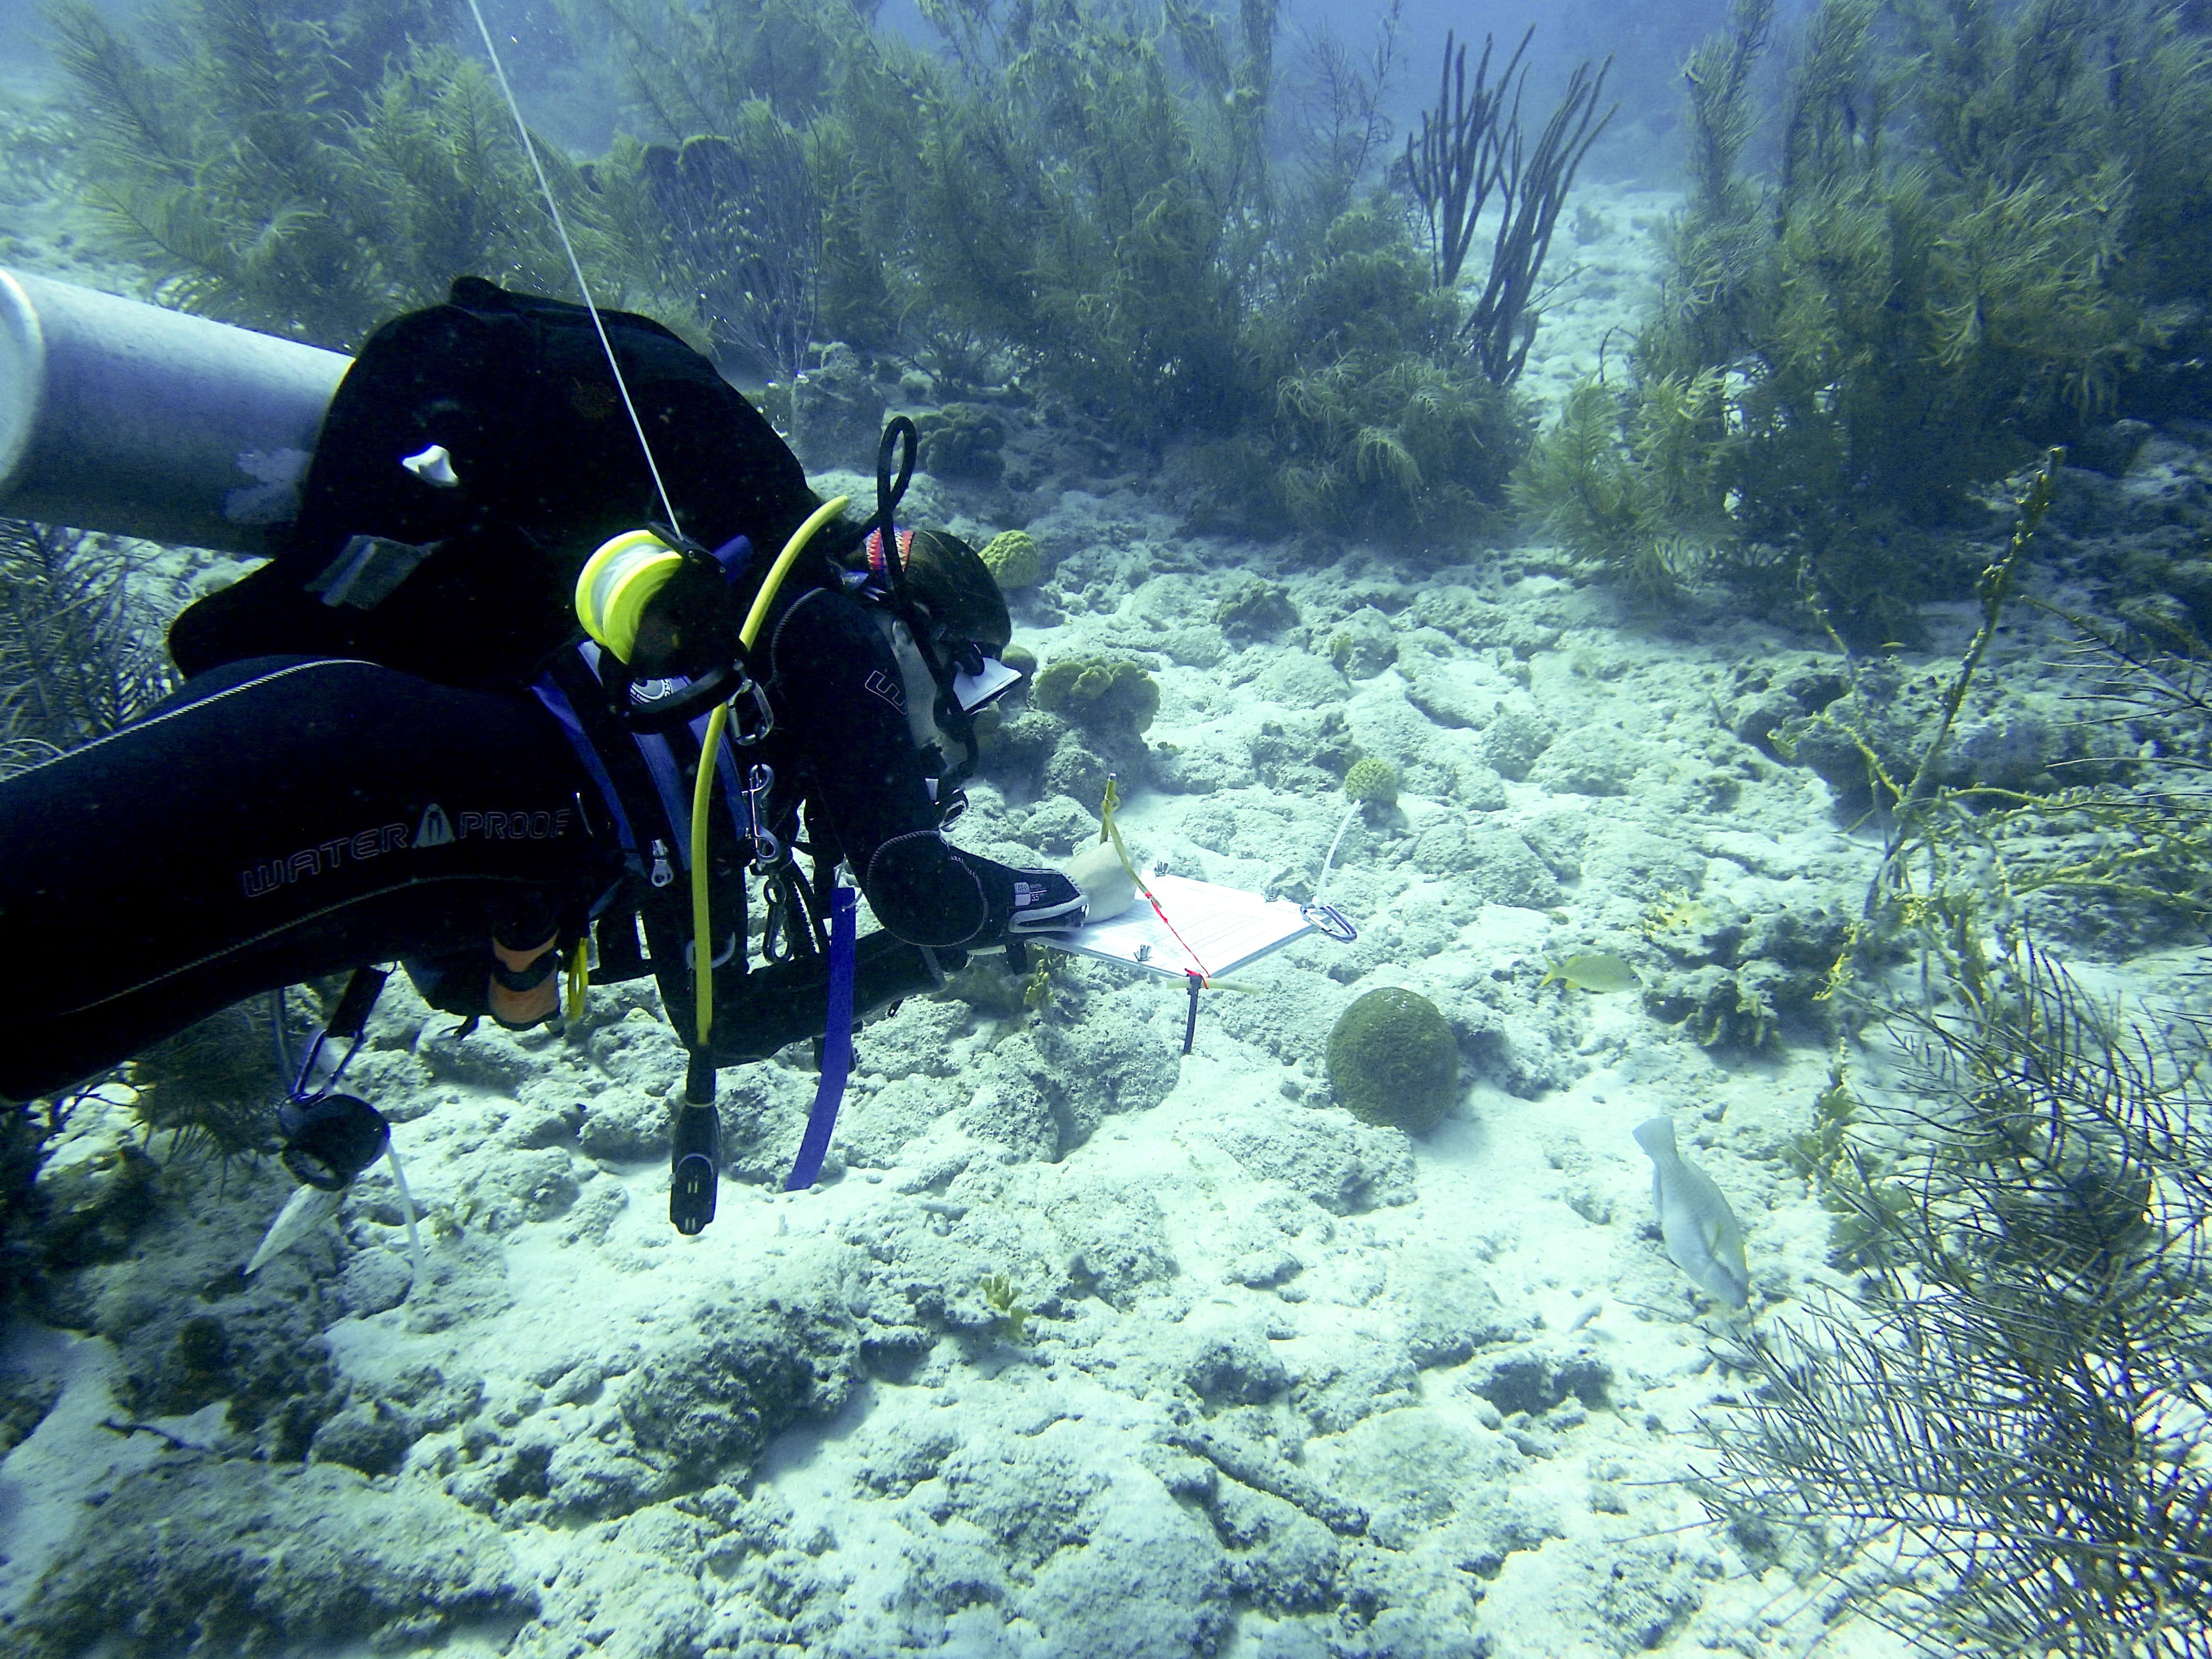 Image. A researcher in diving gear taking notes in an underwater setting.